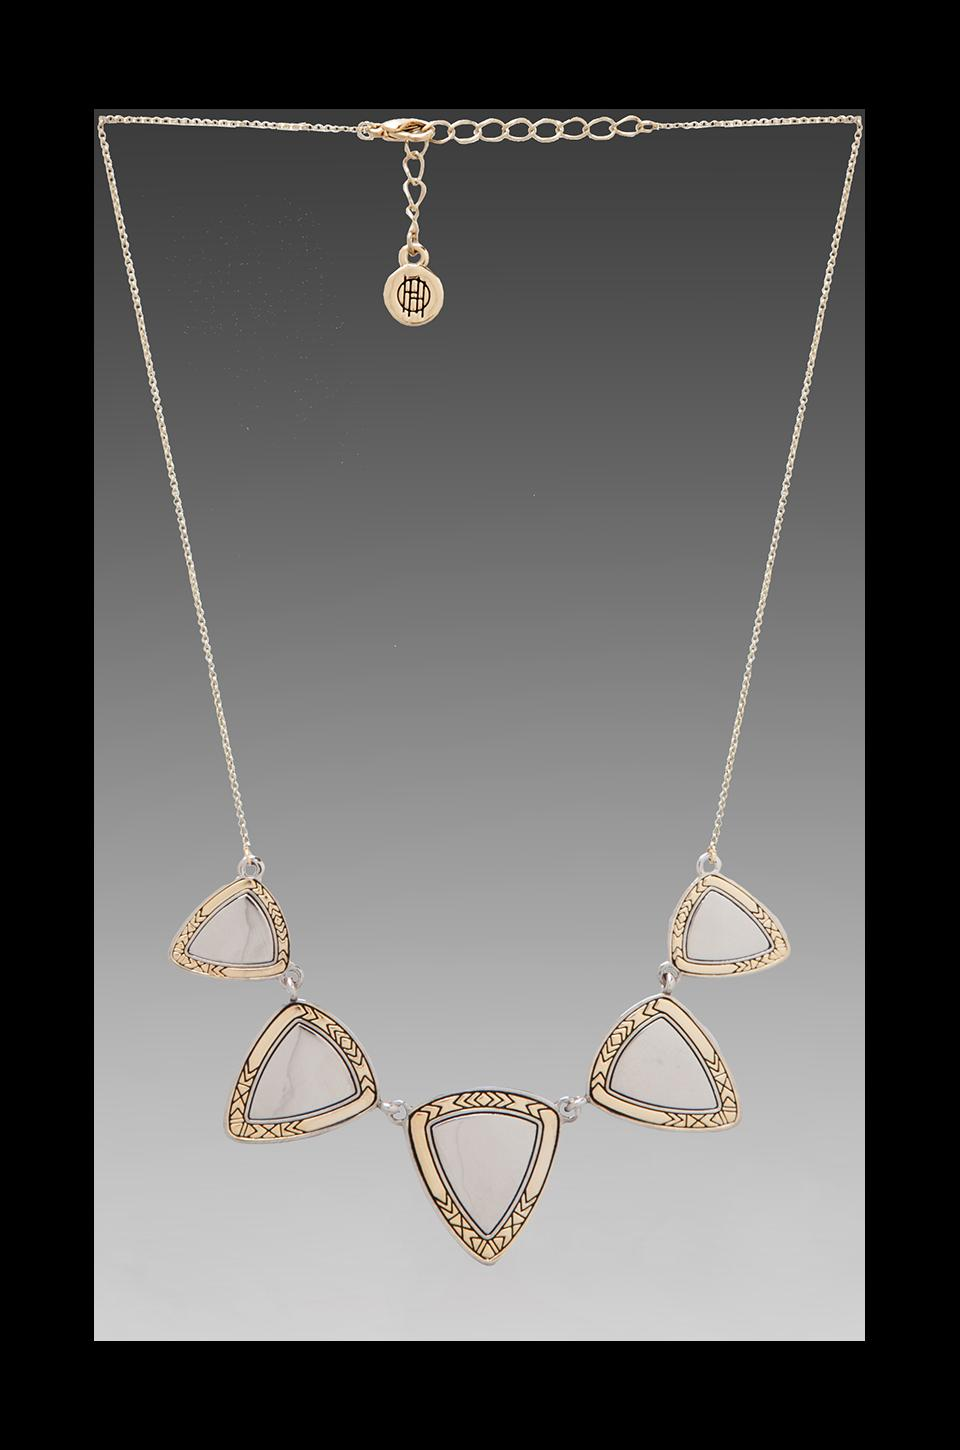 House of Harlow Metallic Flatpick Necklace in Gold